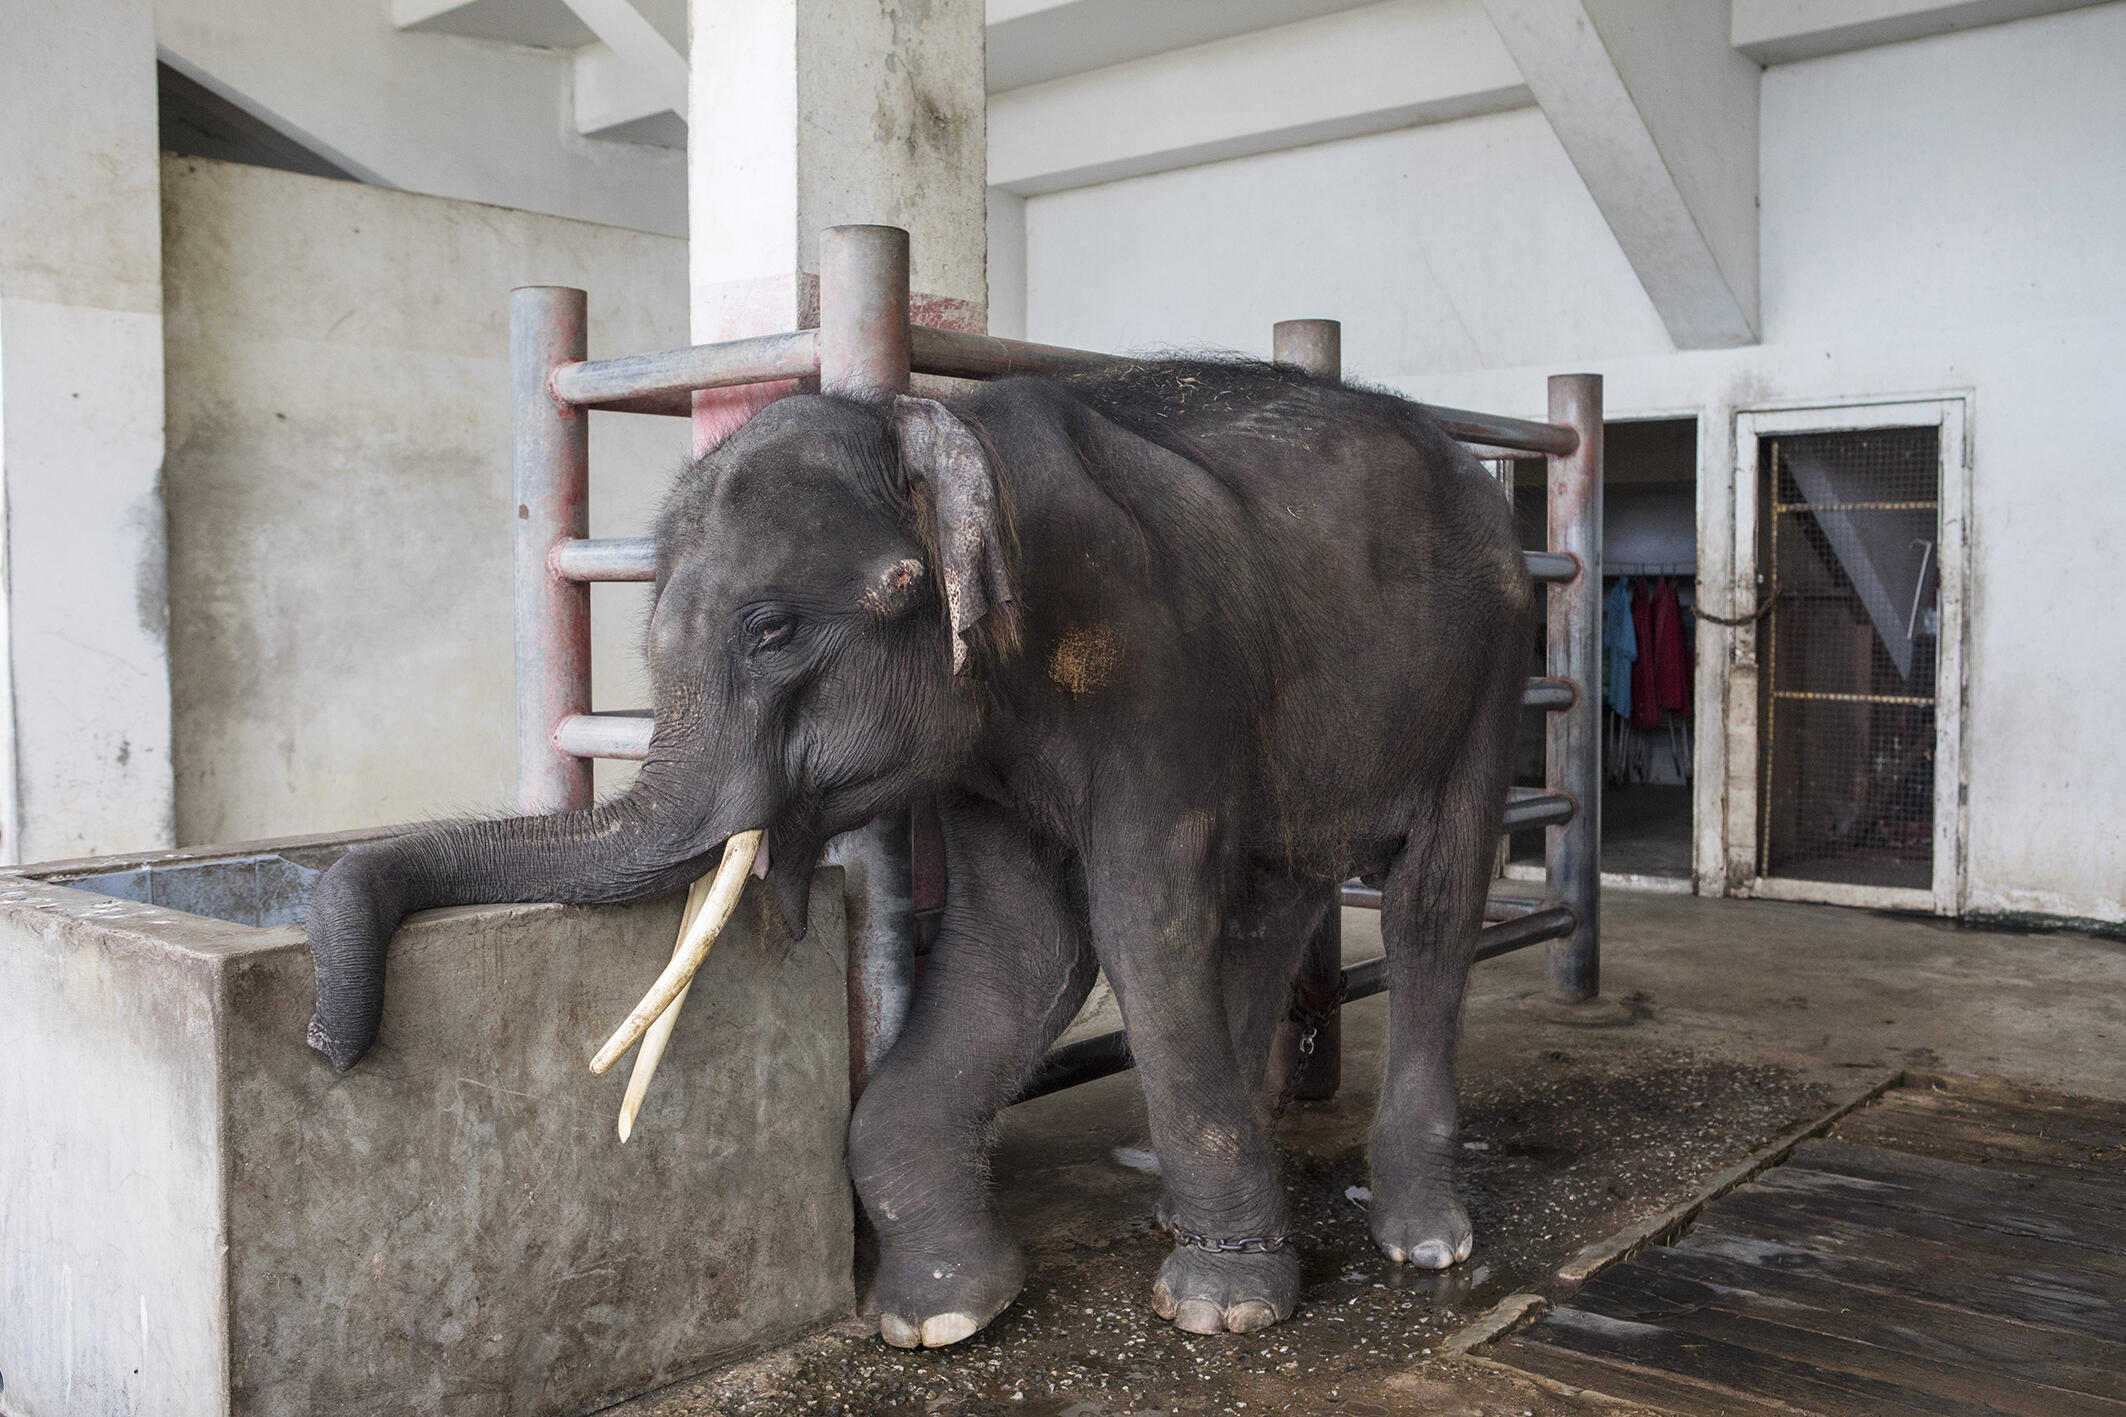 Elephant kept away due to an injured leg in Kirsten Luce's exposition